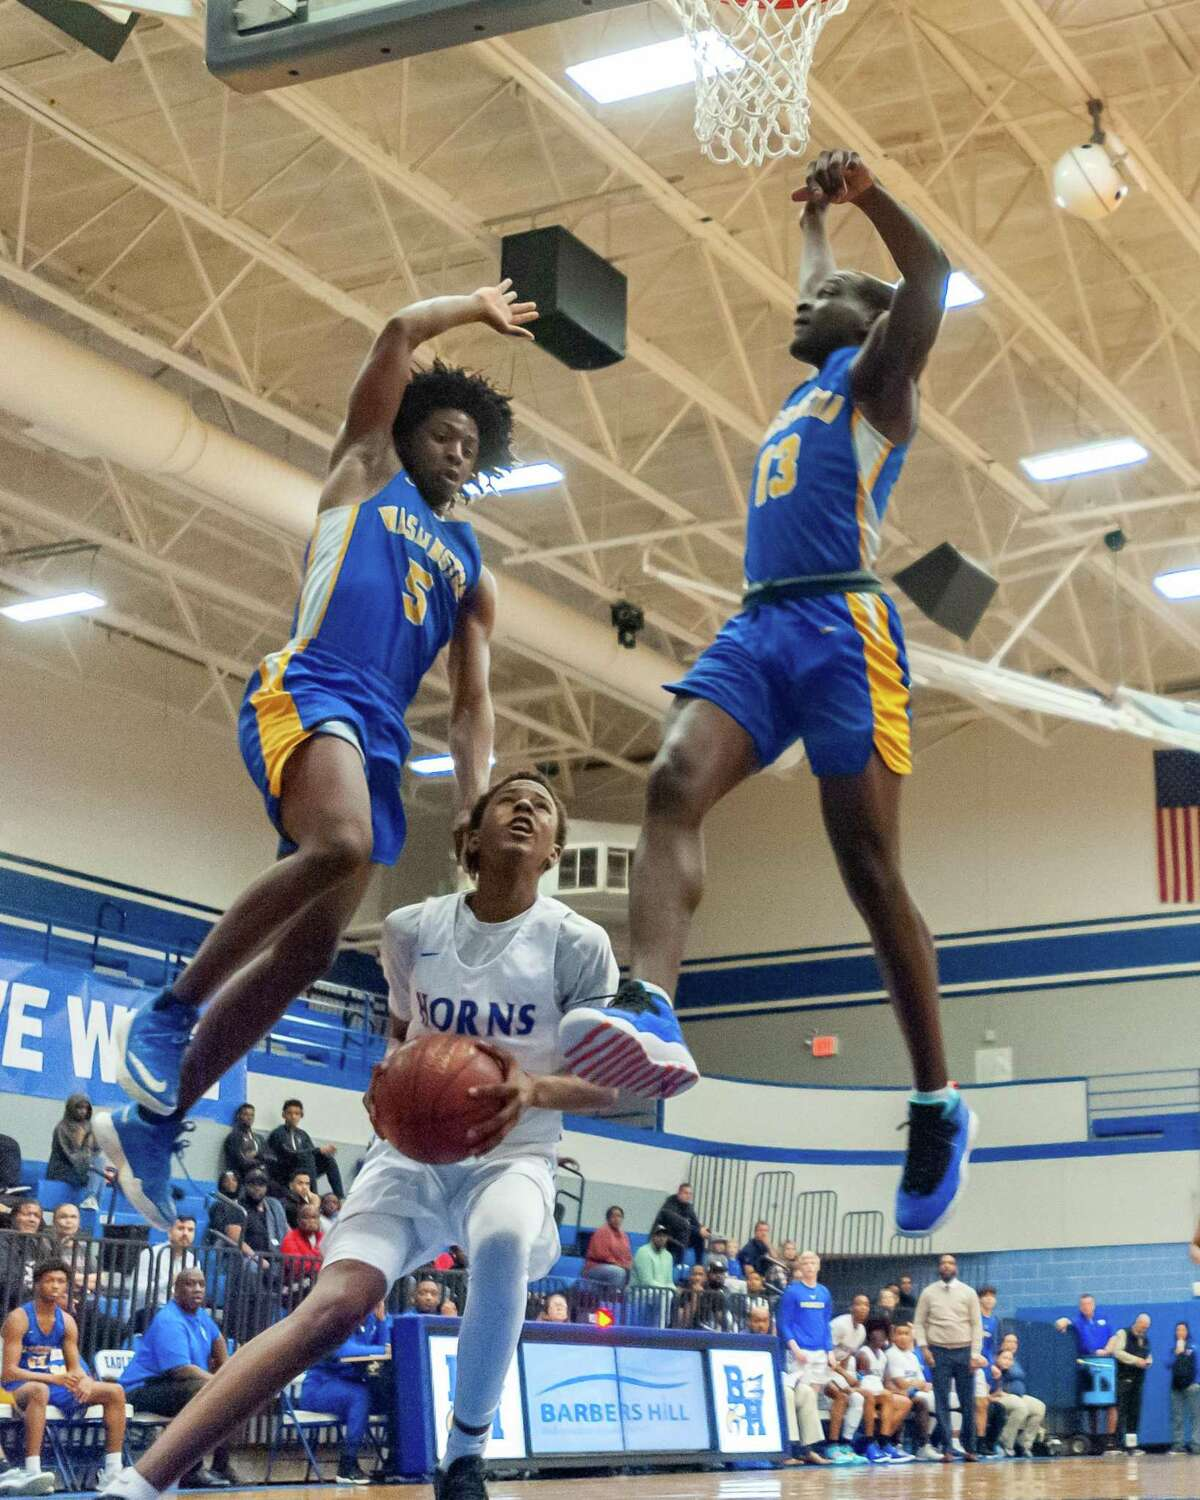 Robert Reed (12) waits for the traffic to clear to put up a layup in the first half as the Longhorns of Hamshire-Fannett went down to the Eagles of Booker T. Washington in the area round playoffs at Barbers Hill High School on Friday, February 28, 2020. Fran Ruchalski/The Enterprise